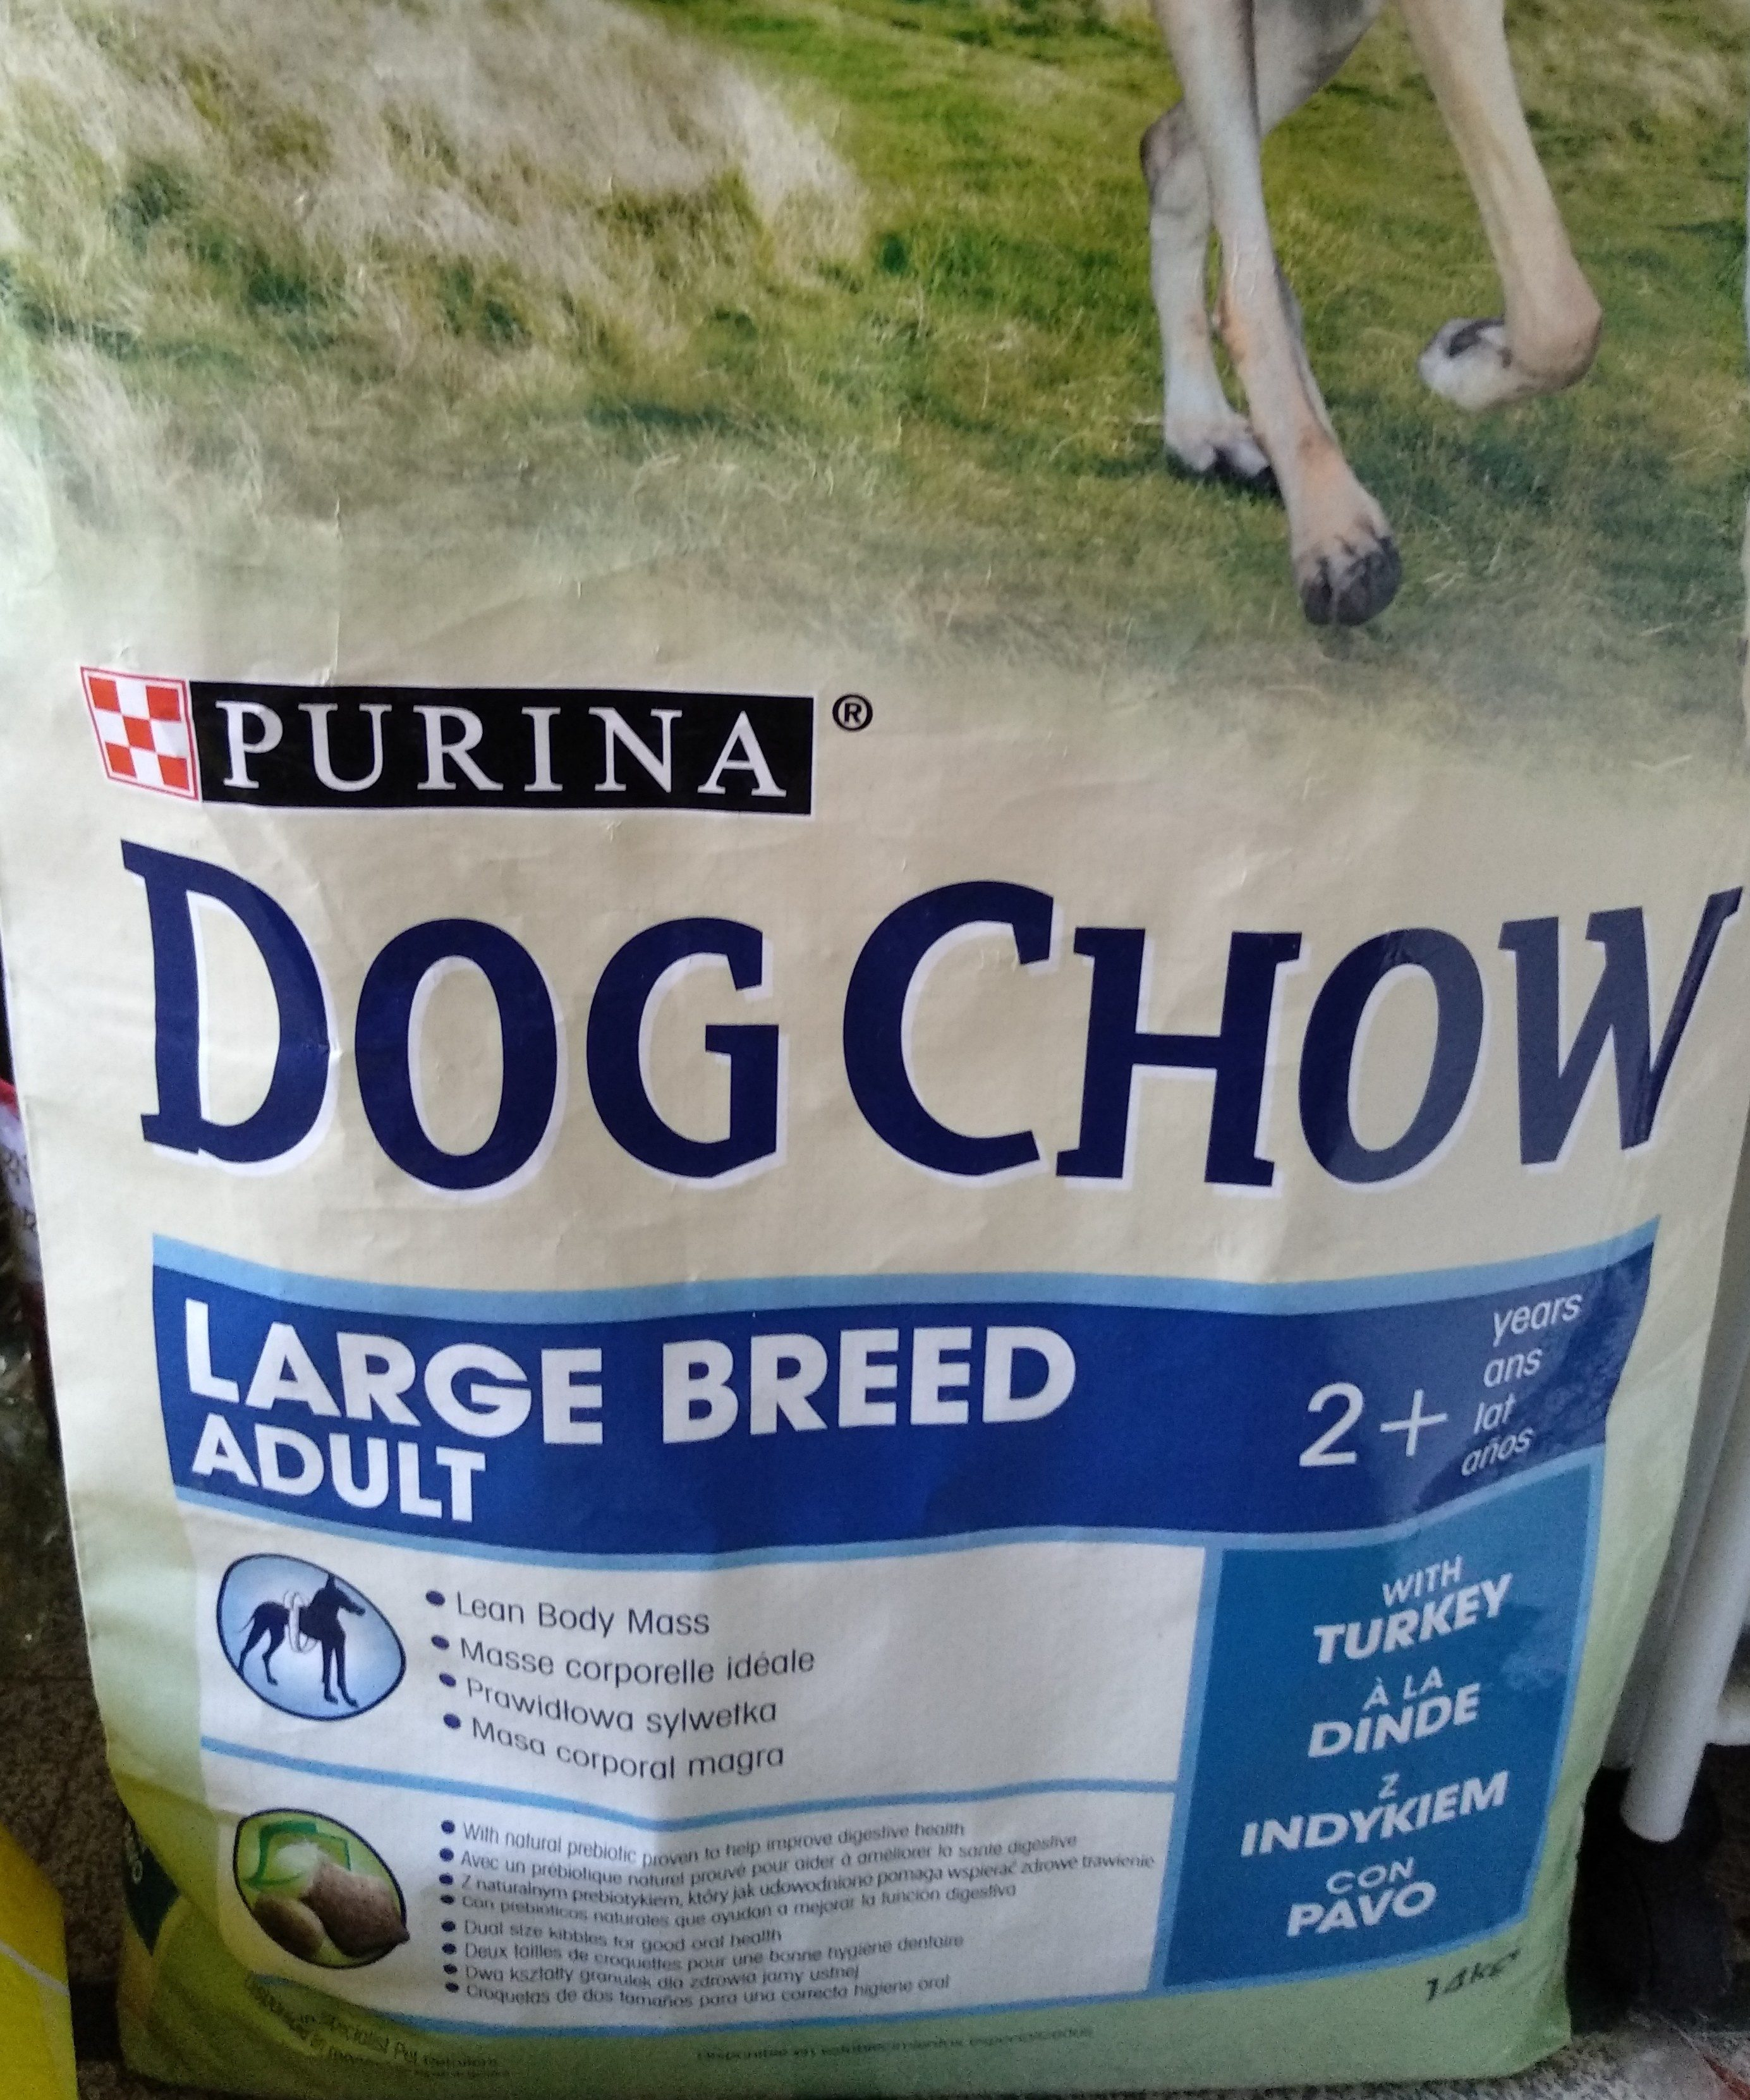 Dog Chow Large Breed Adult - Product - fr